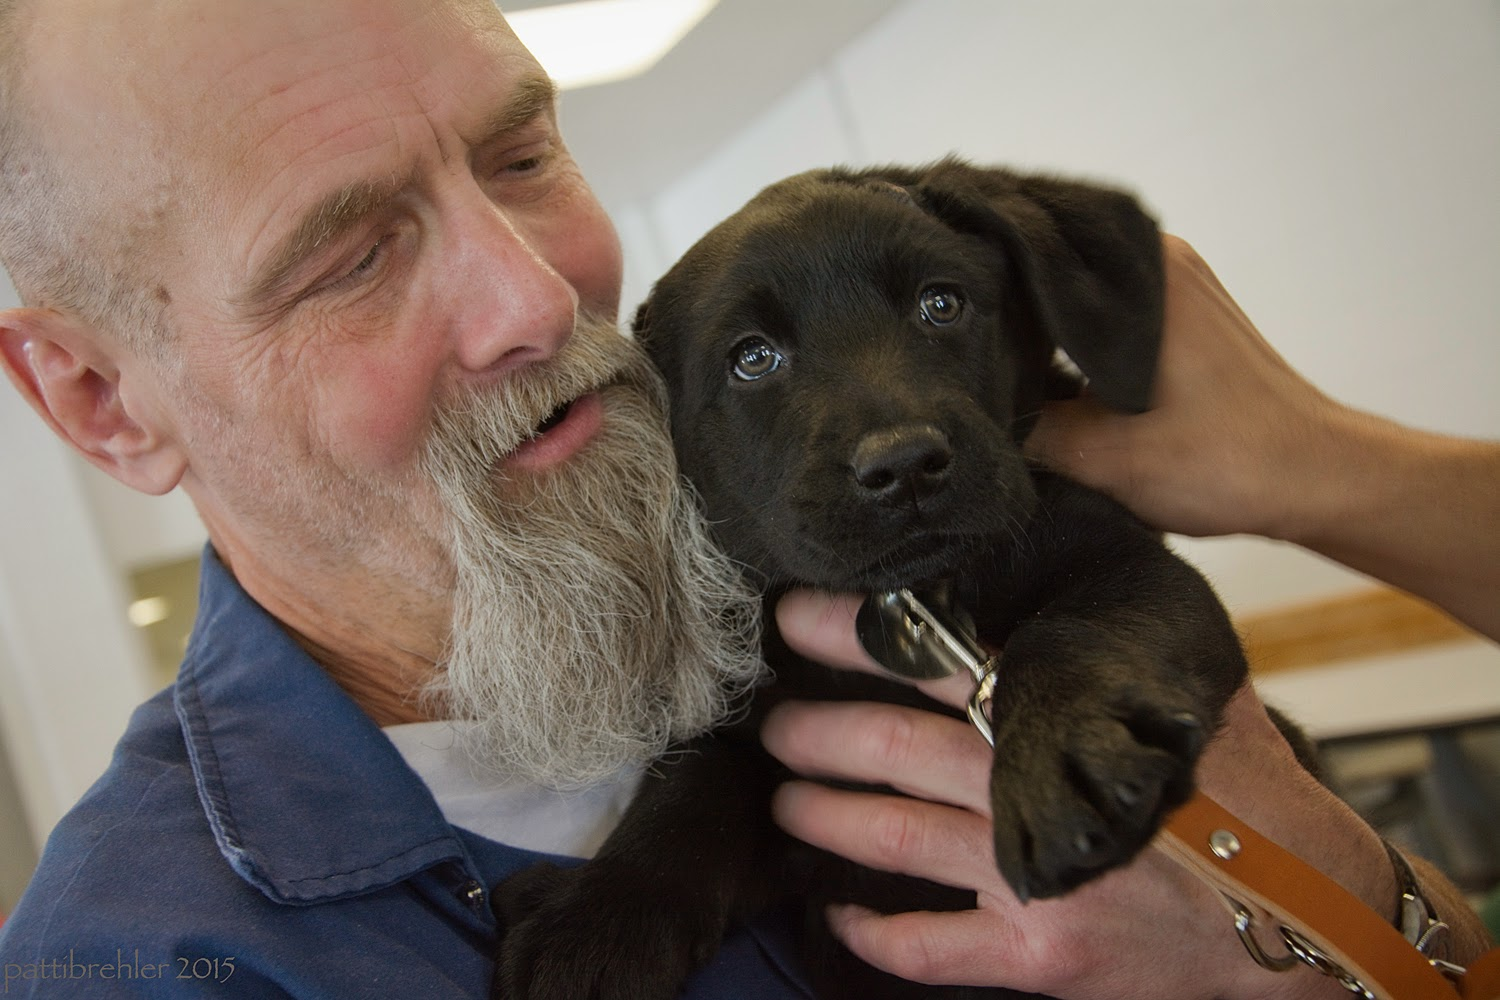 This is a close up shot of the man dressed in blue holding the puppy close to his face. The man is looking down at the puppy and the puppy is looking at the camear. Someone else's hand is petting the puppy behind his left ear from the right. The puppy's left paw is stretched out toward the camera.